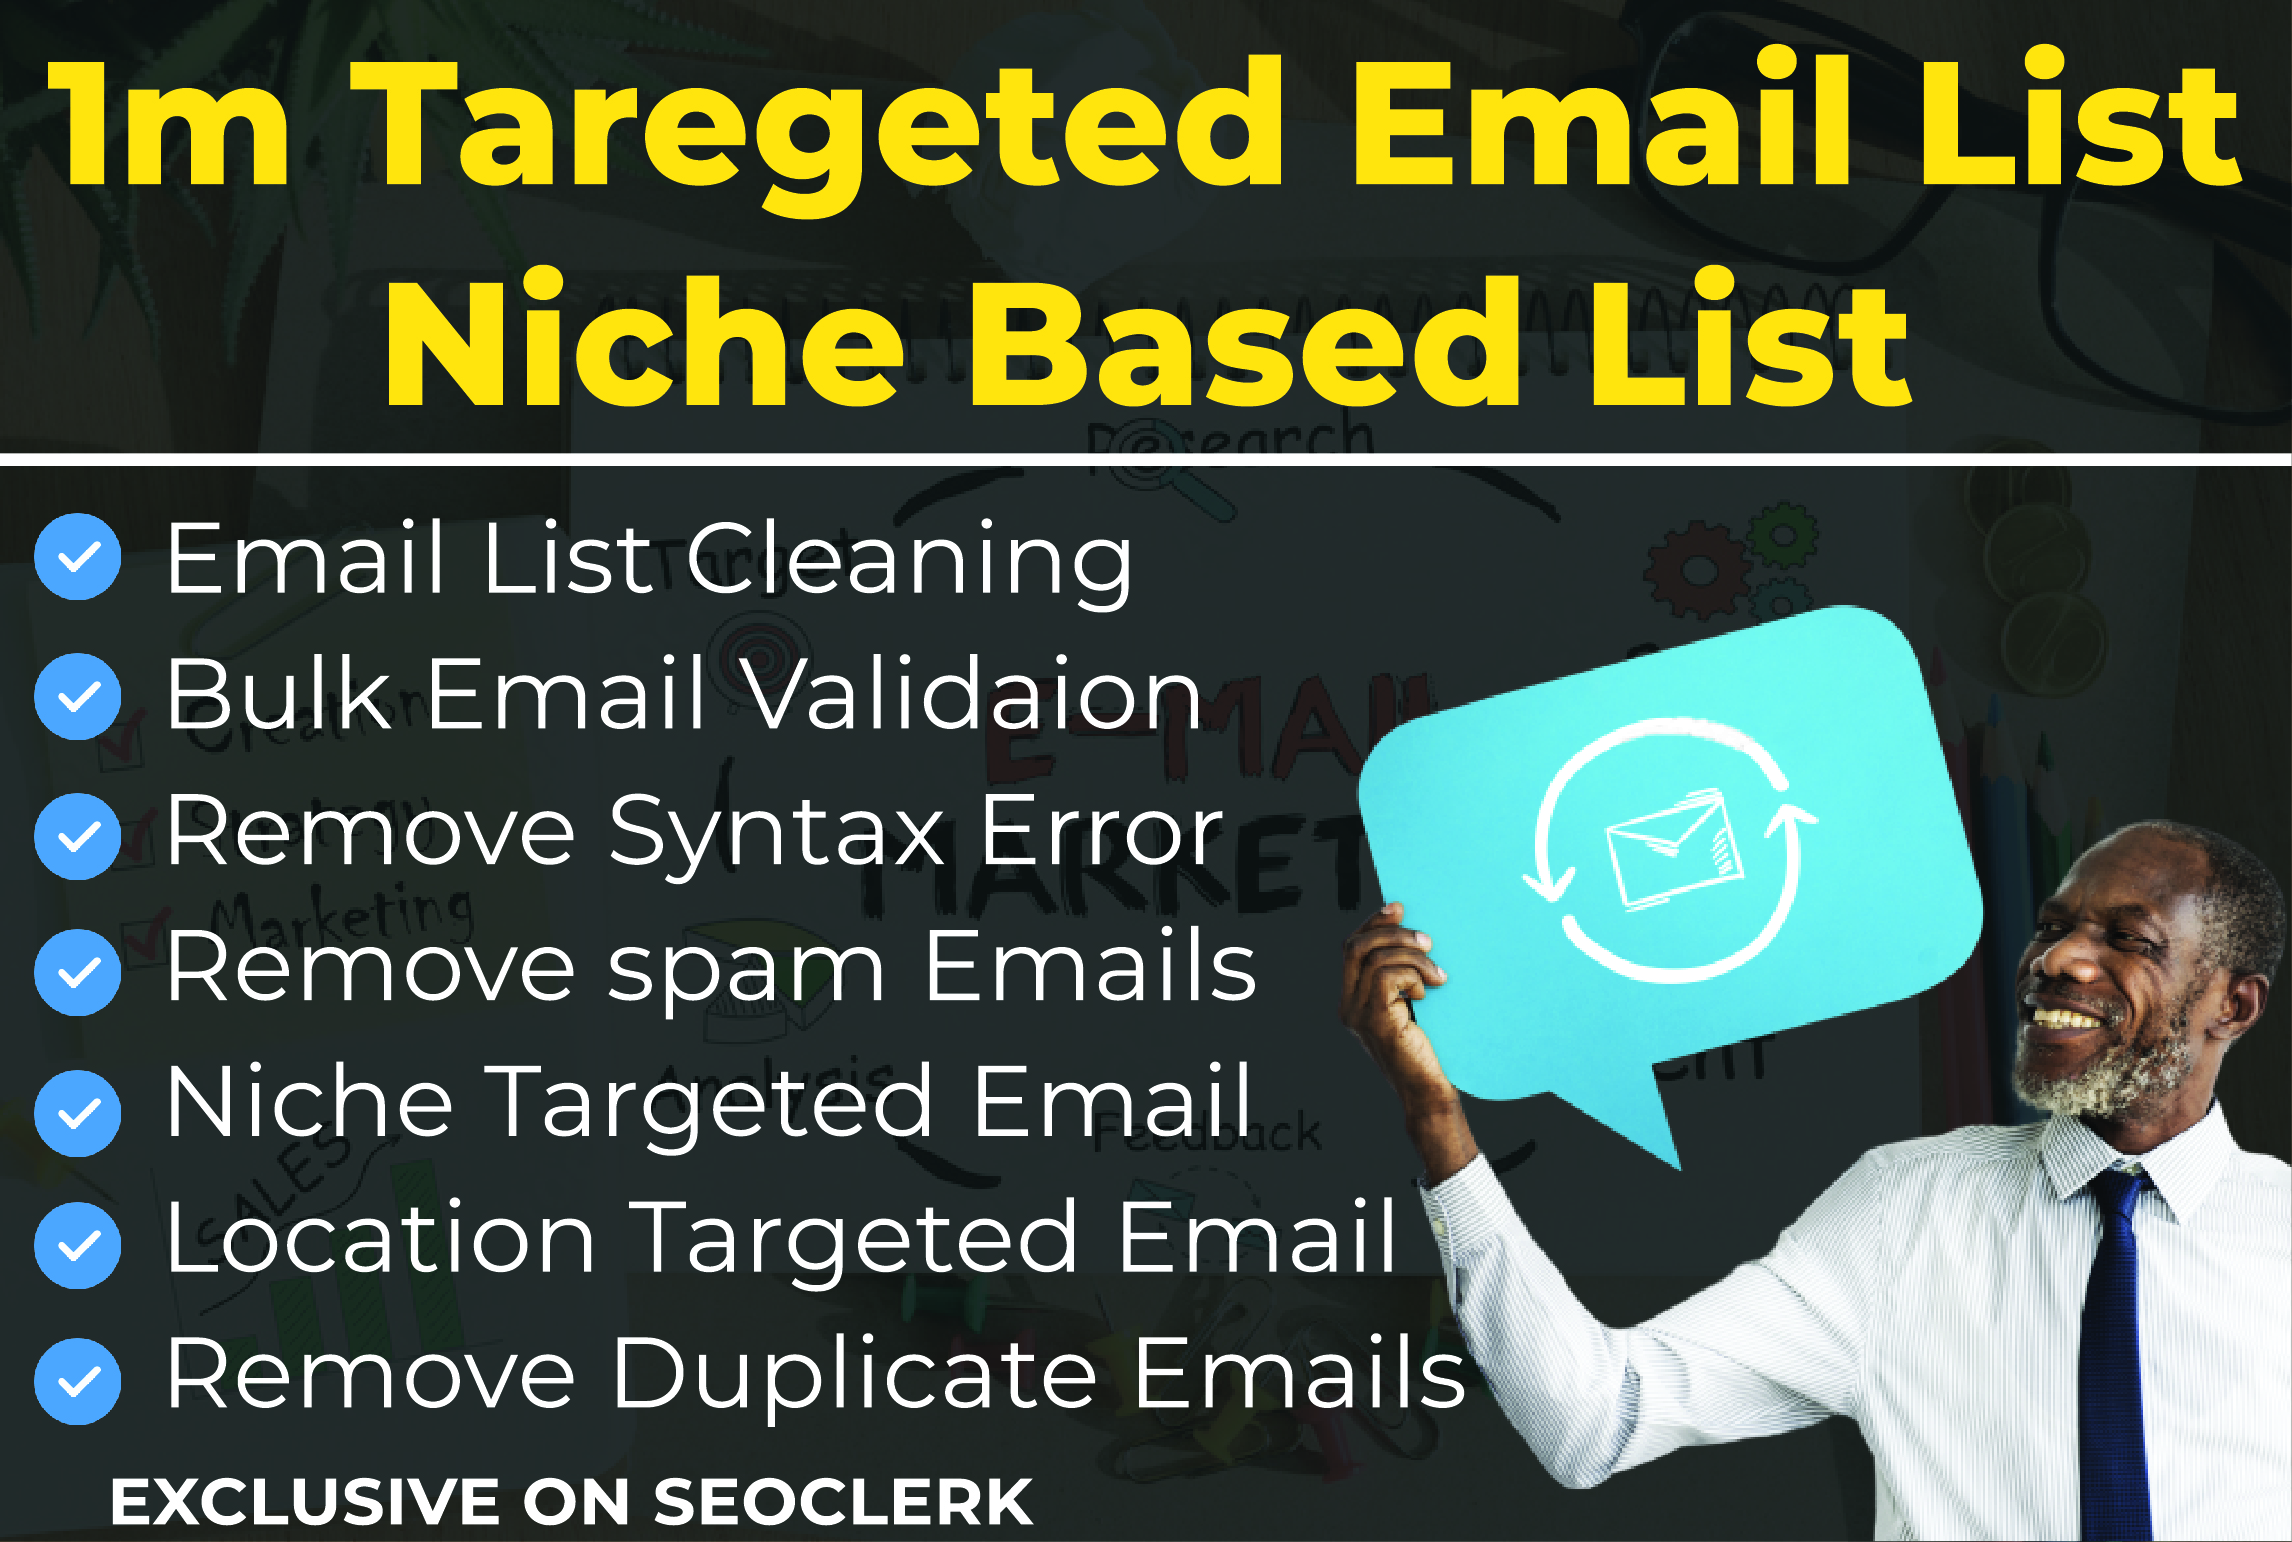 Email collection,  data entry,  data mining,  LinkedIn scraping and web scraping